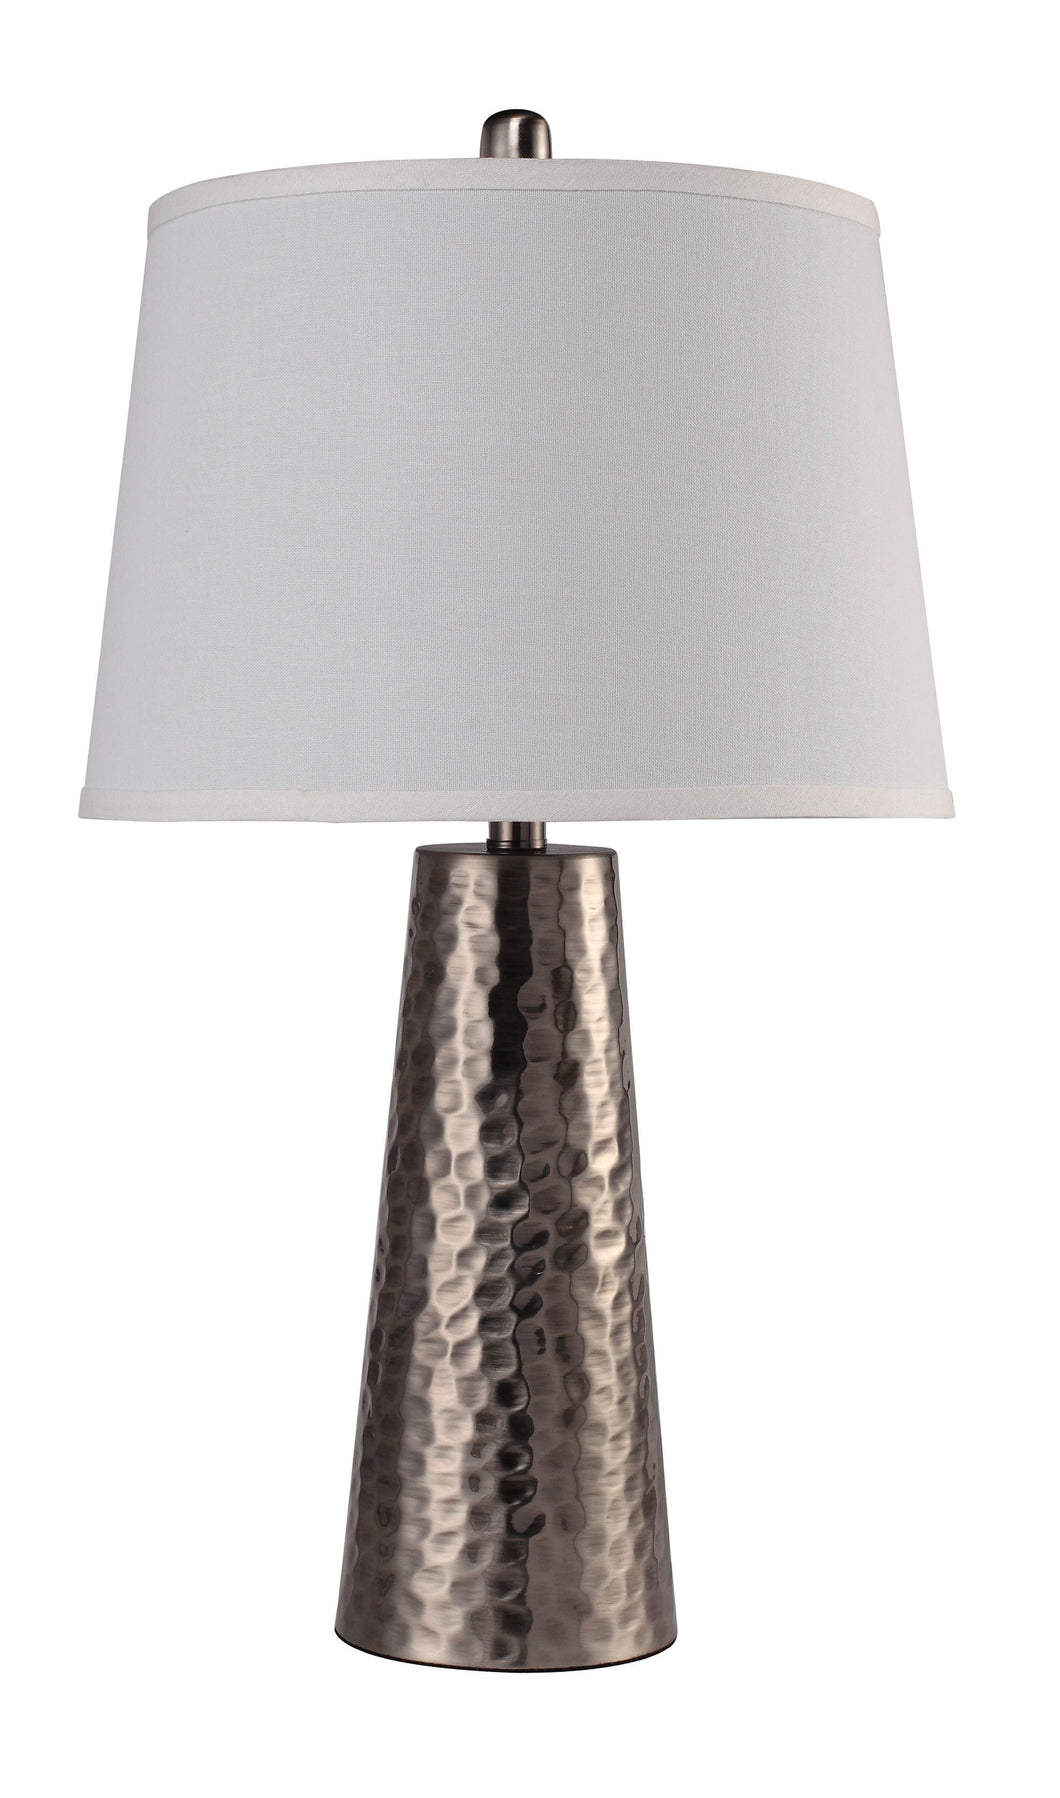 Piapot White & Antique Brass Table Lamp image